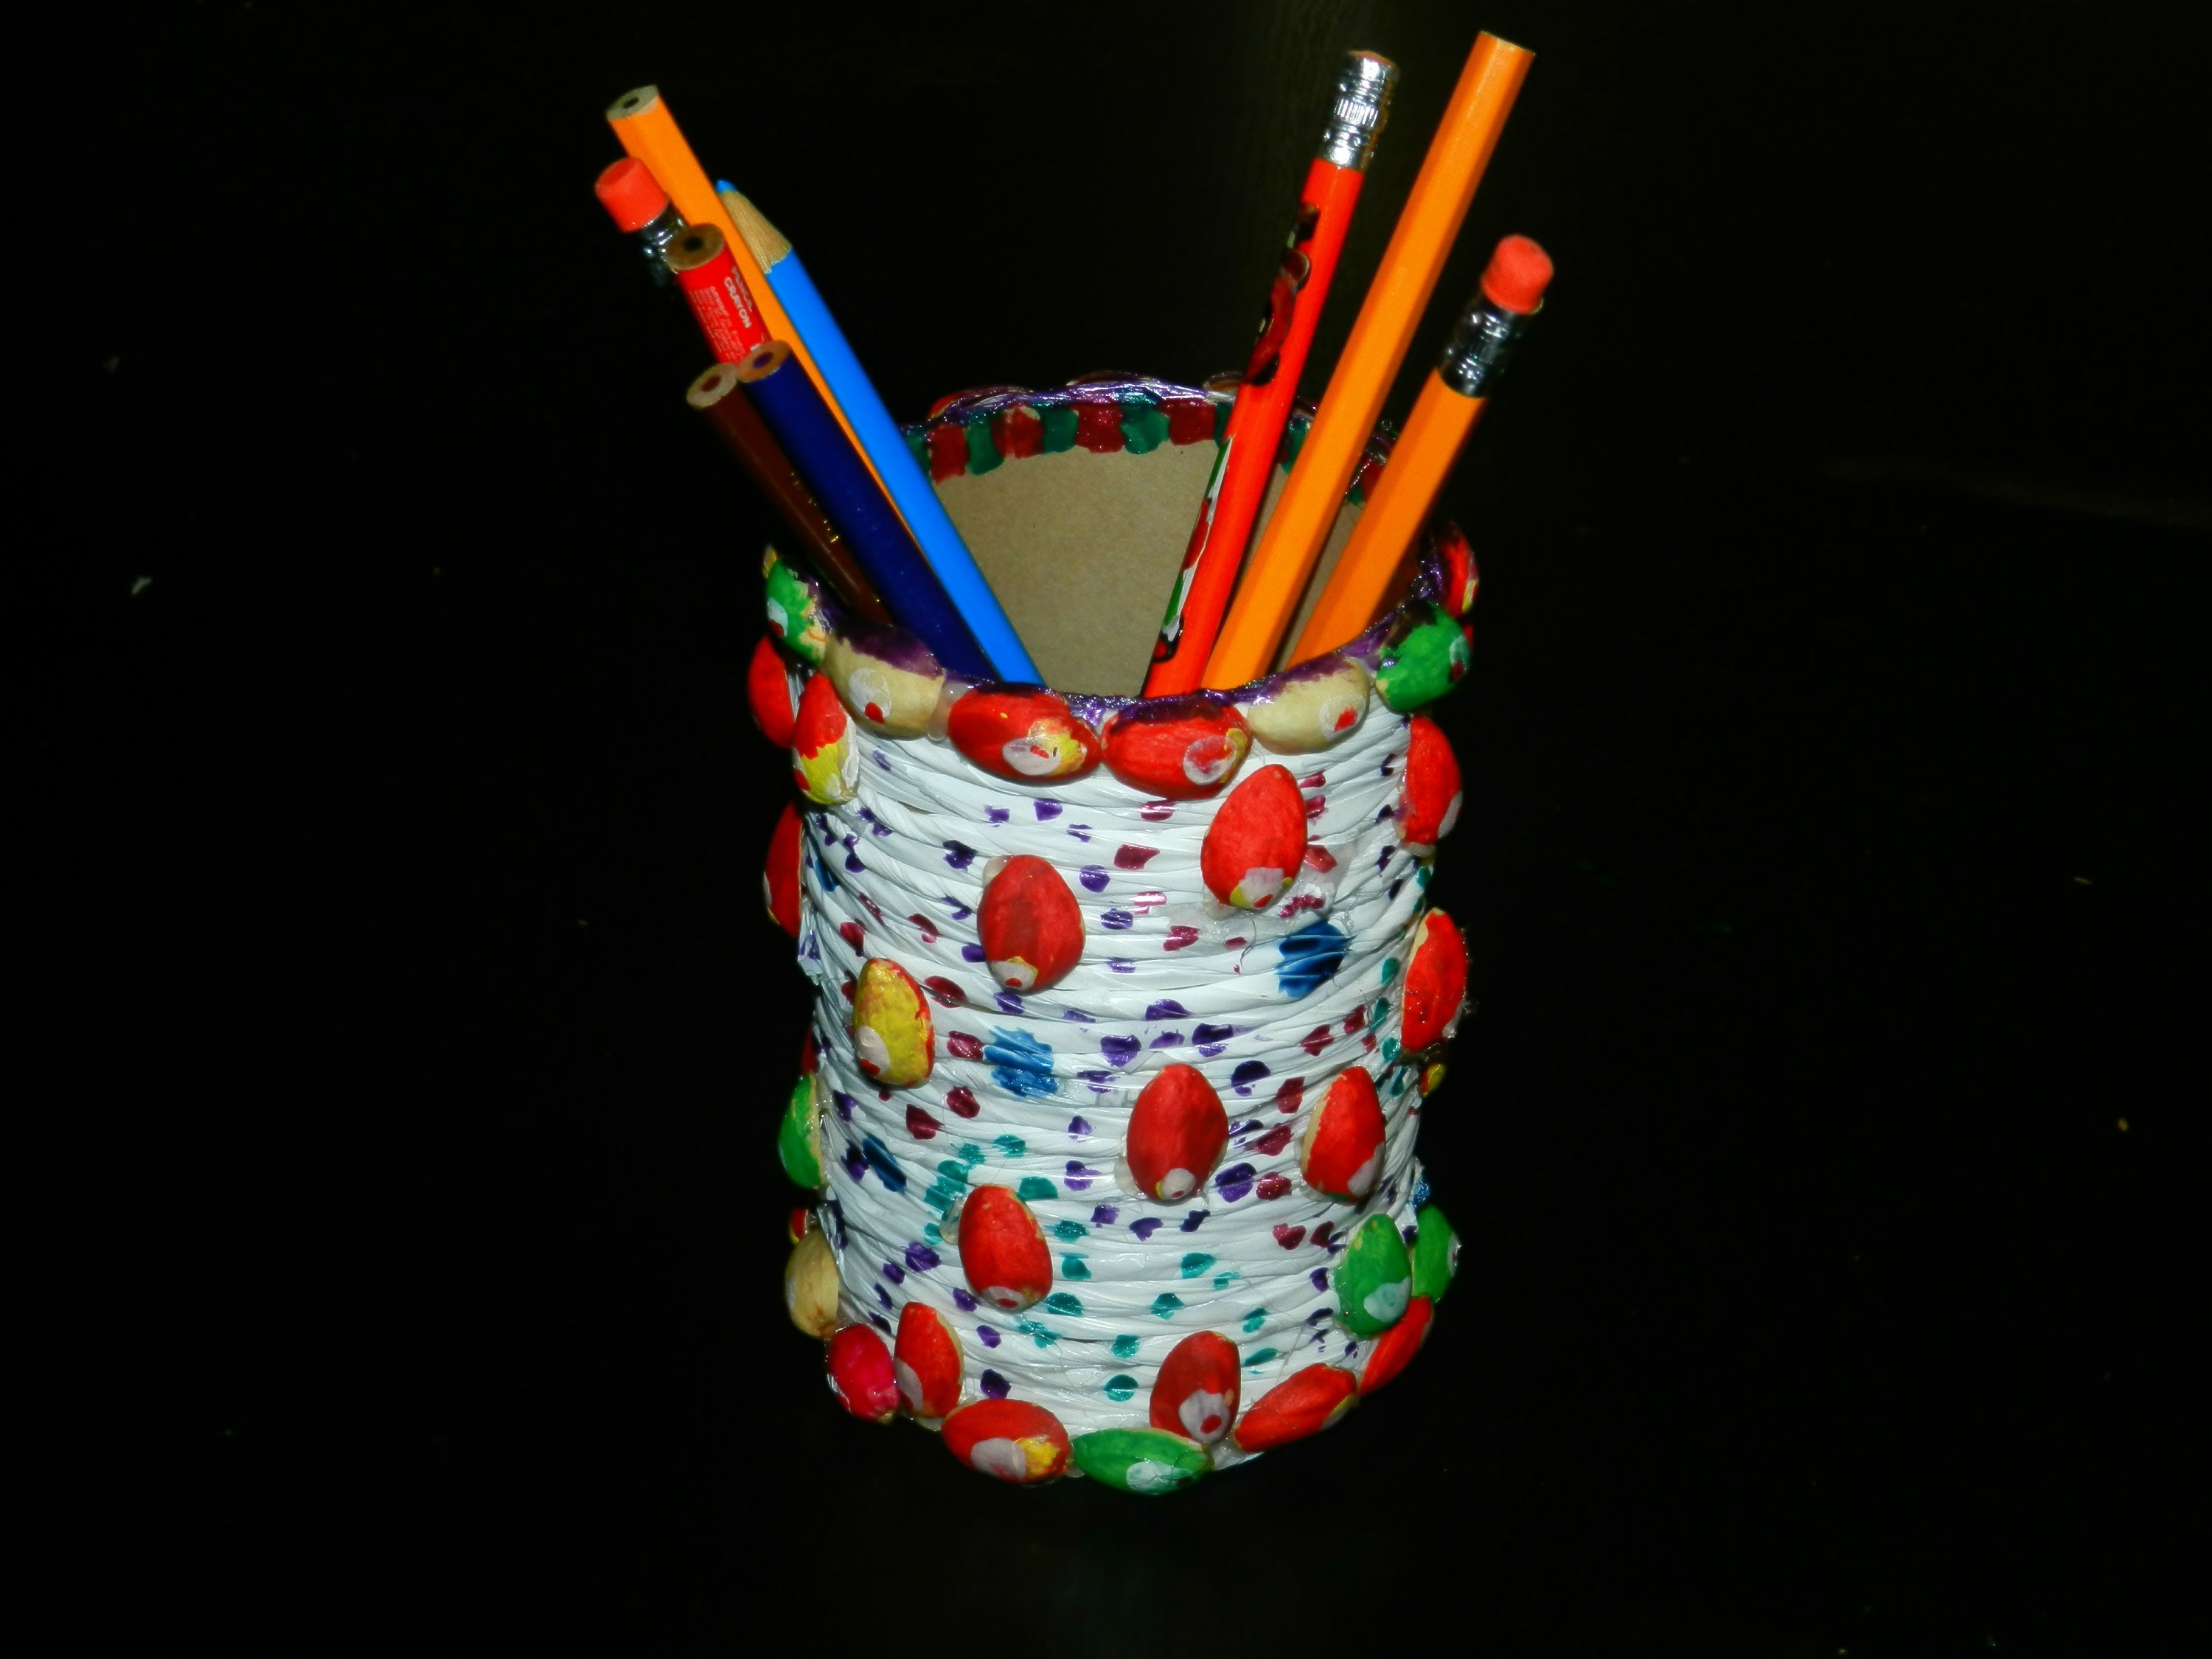 Pen stand from old bangles best out of waste wiki how for Waste out of best models